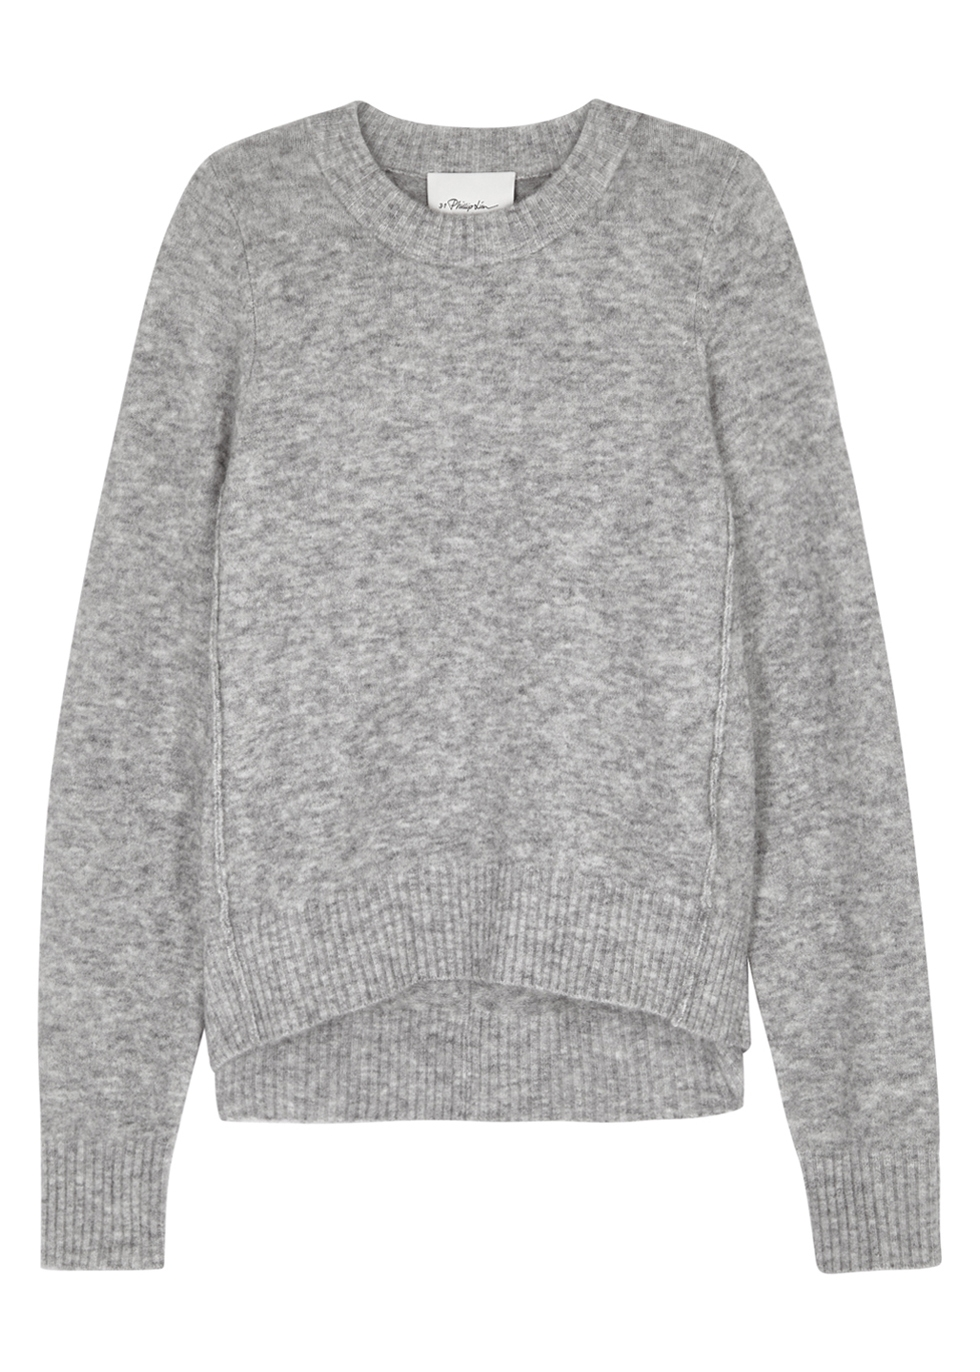 GREY MÉLANGE KNITTED JUMPER